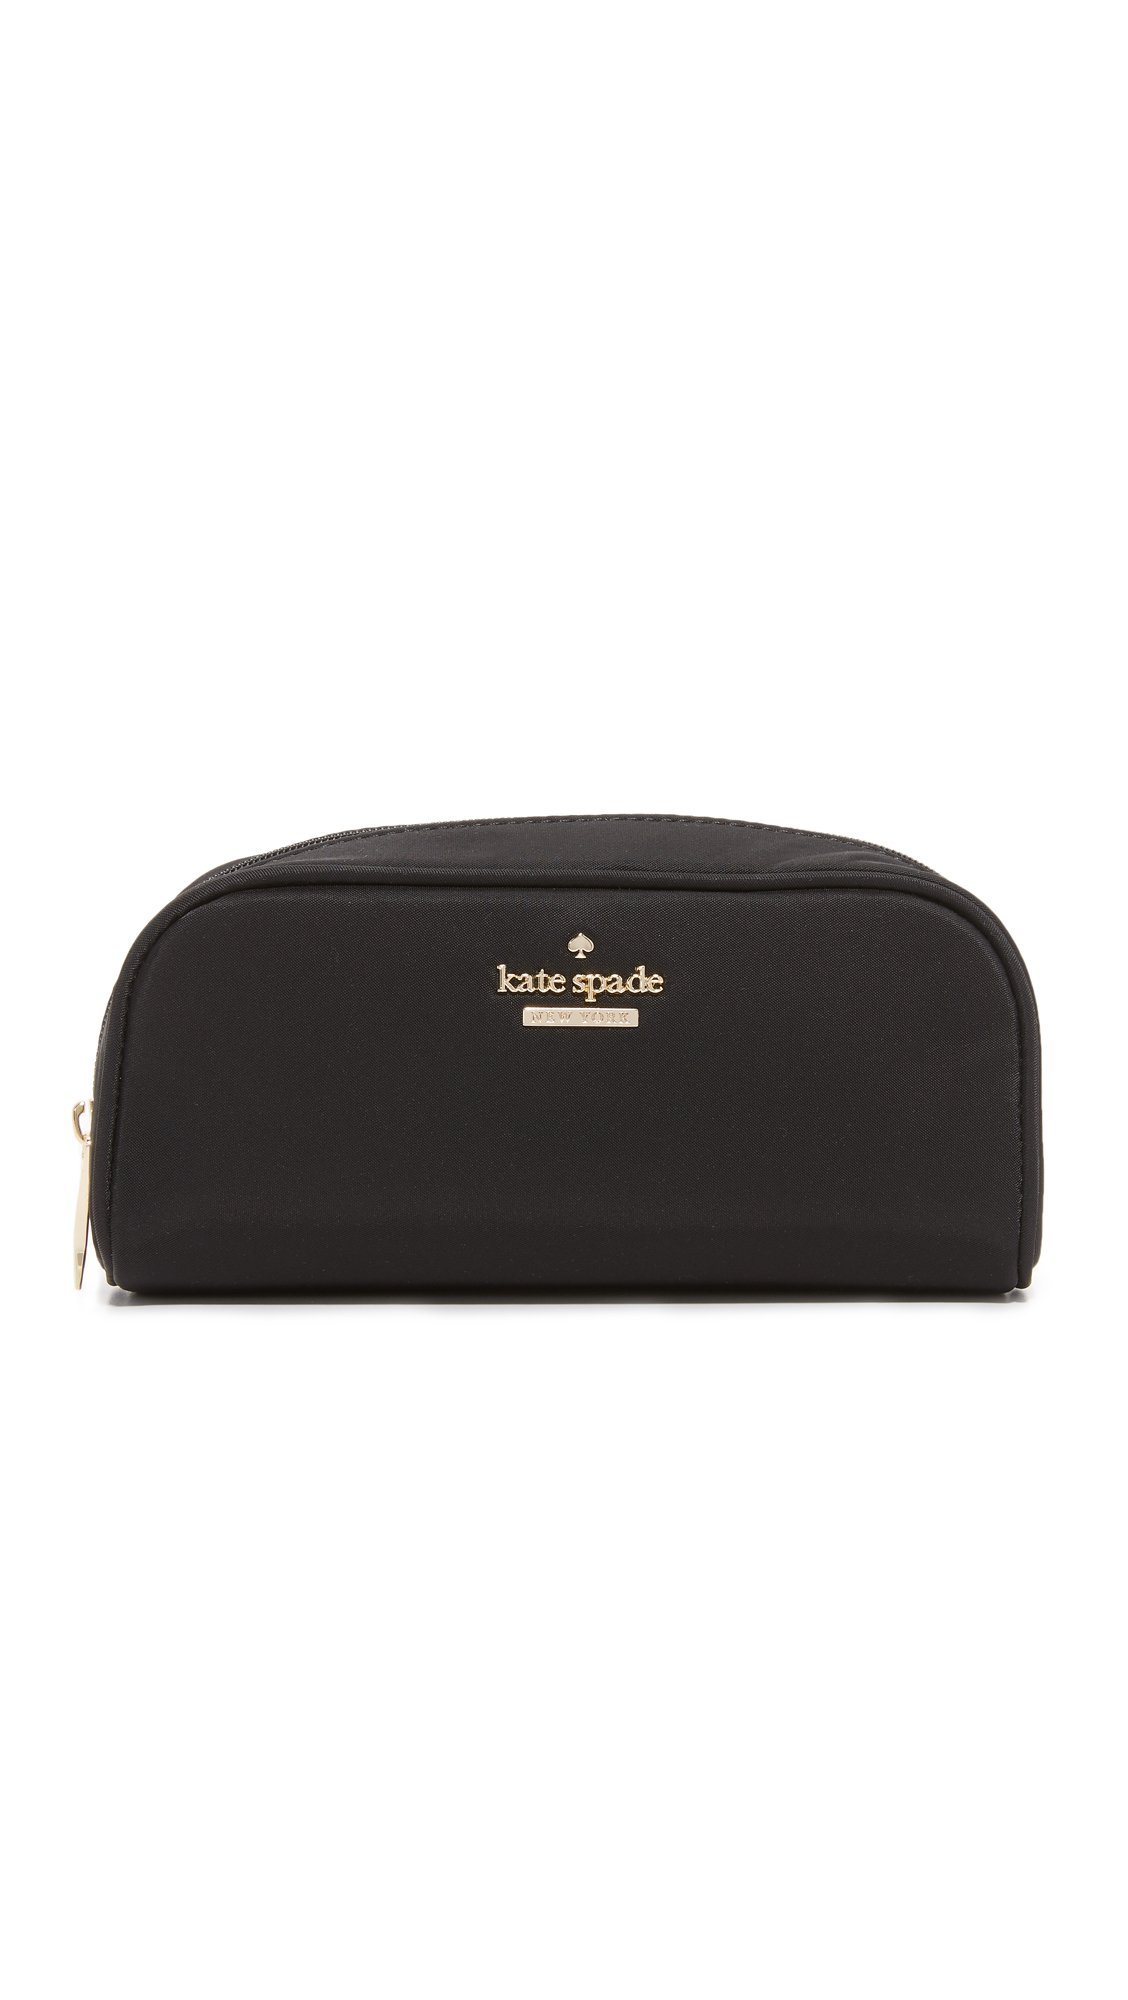 Kate Spade New York Women's Berrie Cosmetic Case, Black, One Size